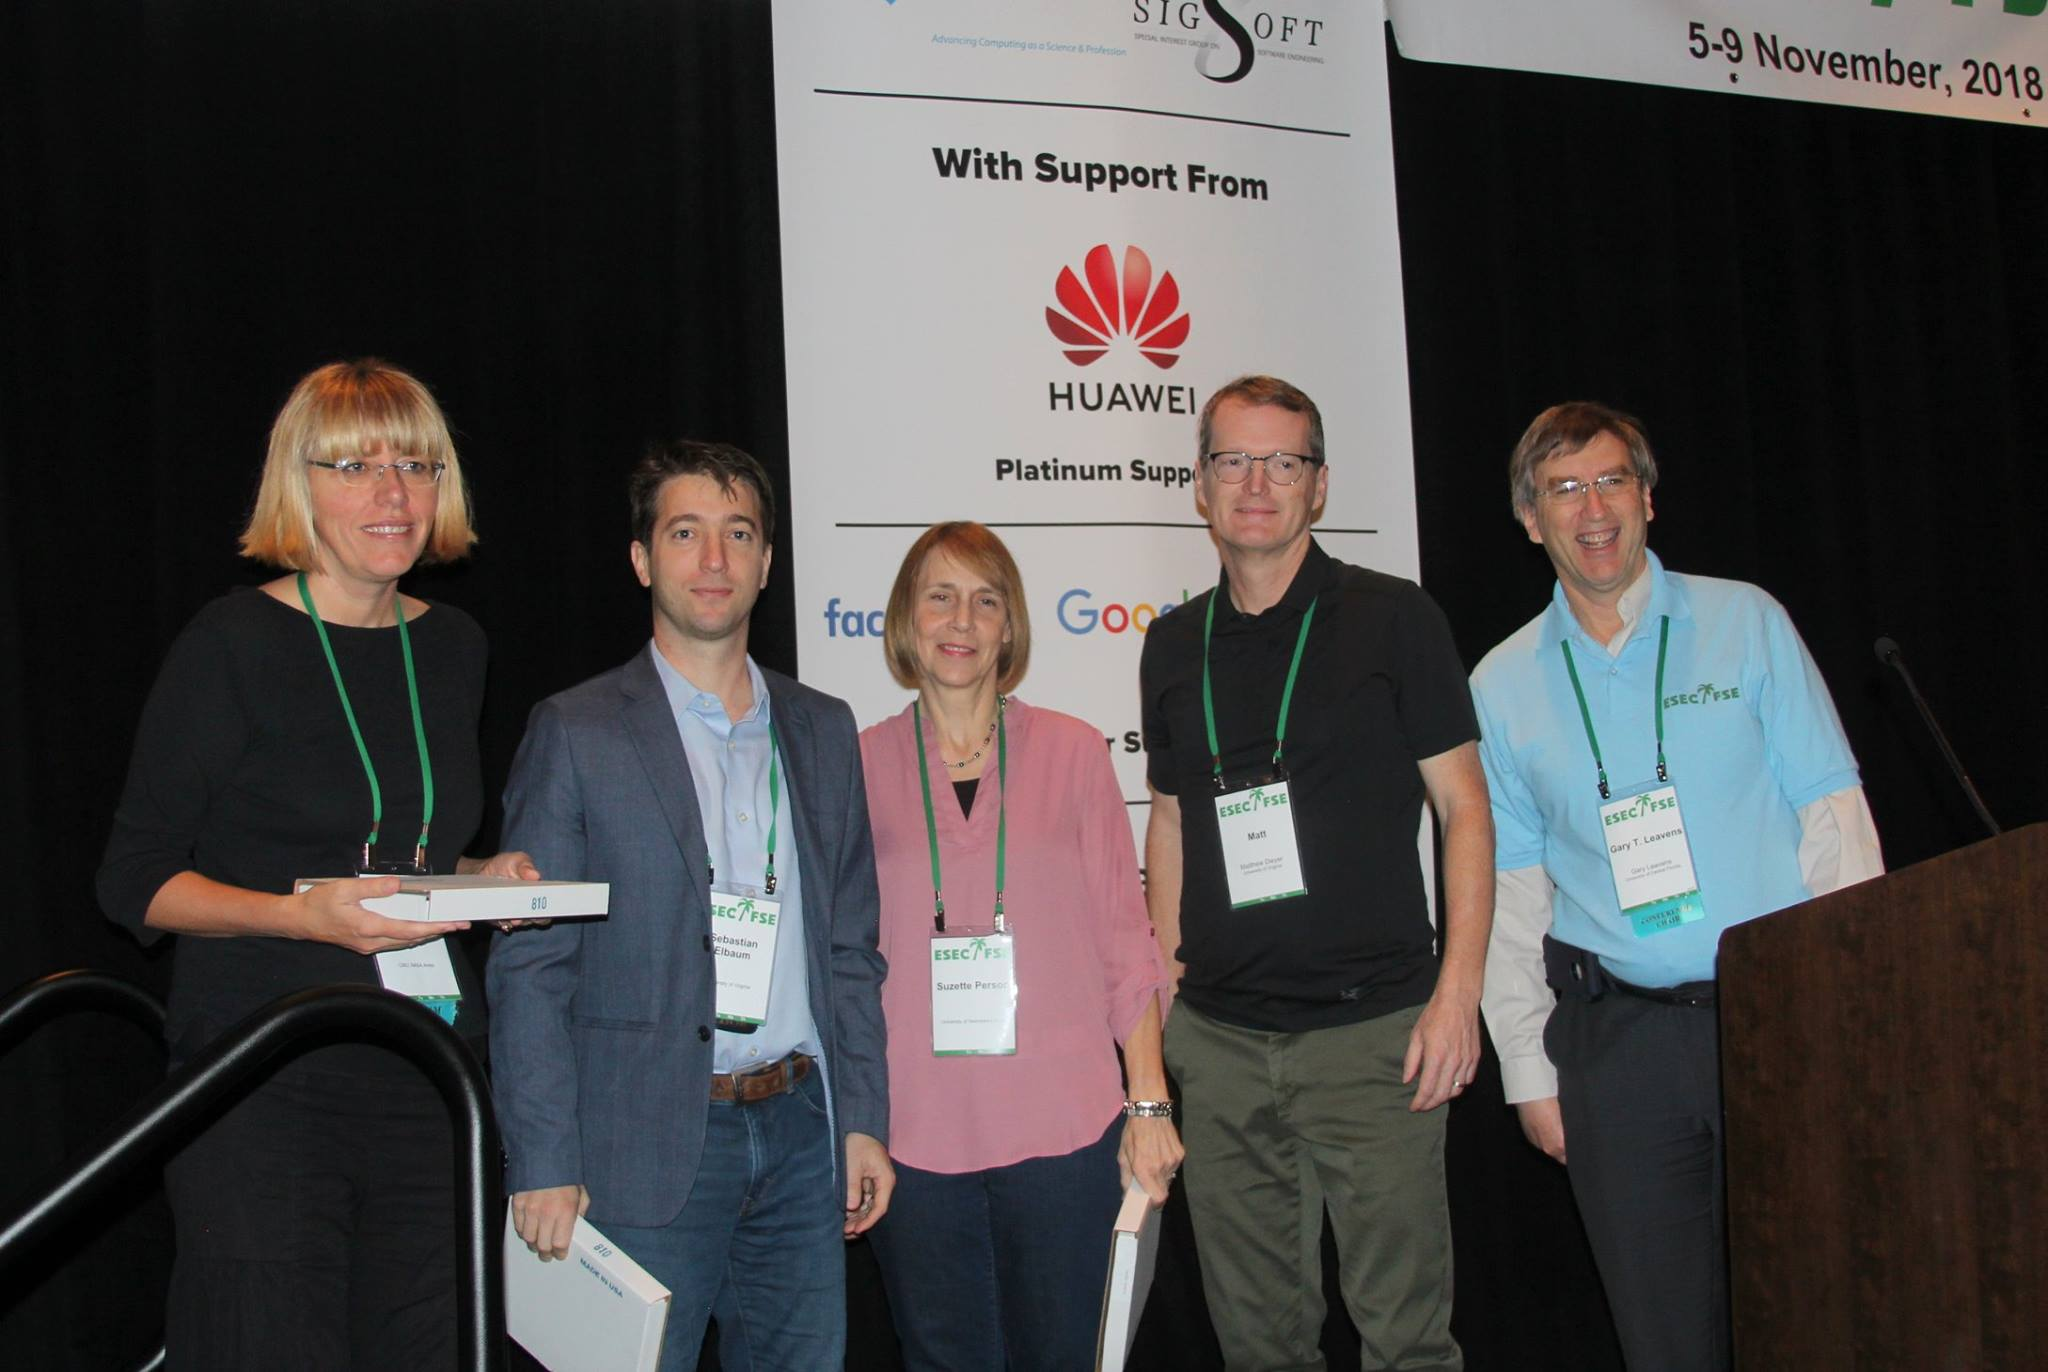 From left to right: Corina S. Pǎsǎreanu, Sebastian Elbaum, Suzette Person, Matthew Dwyer, and Gary Leavens.